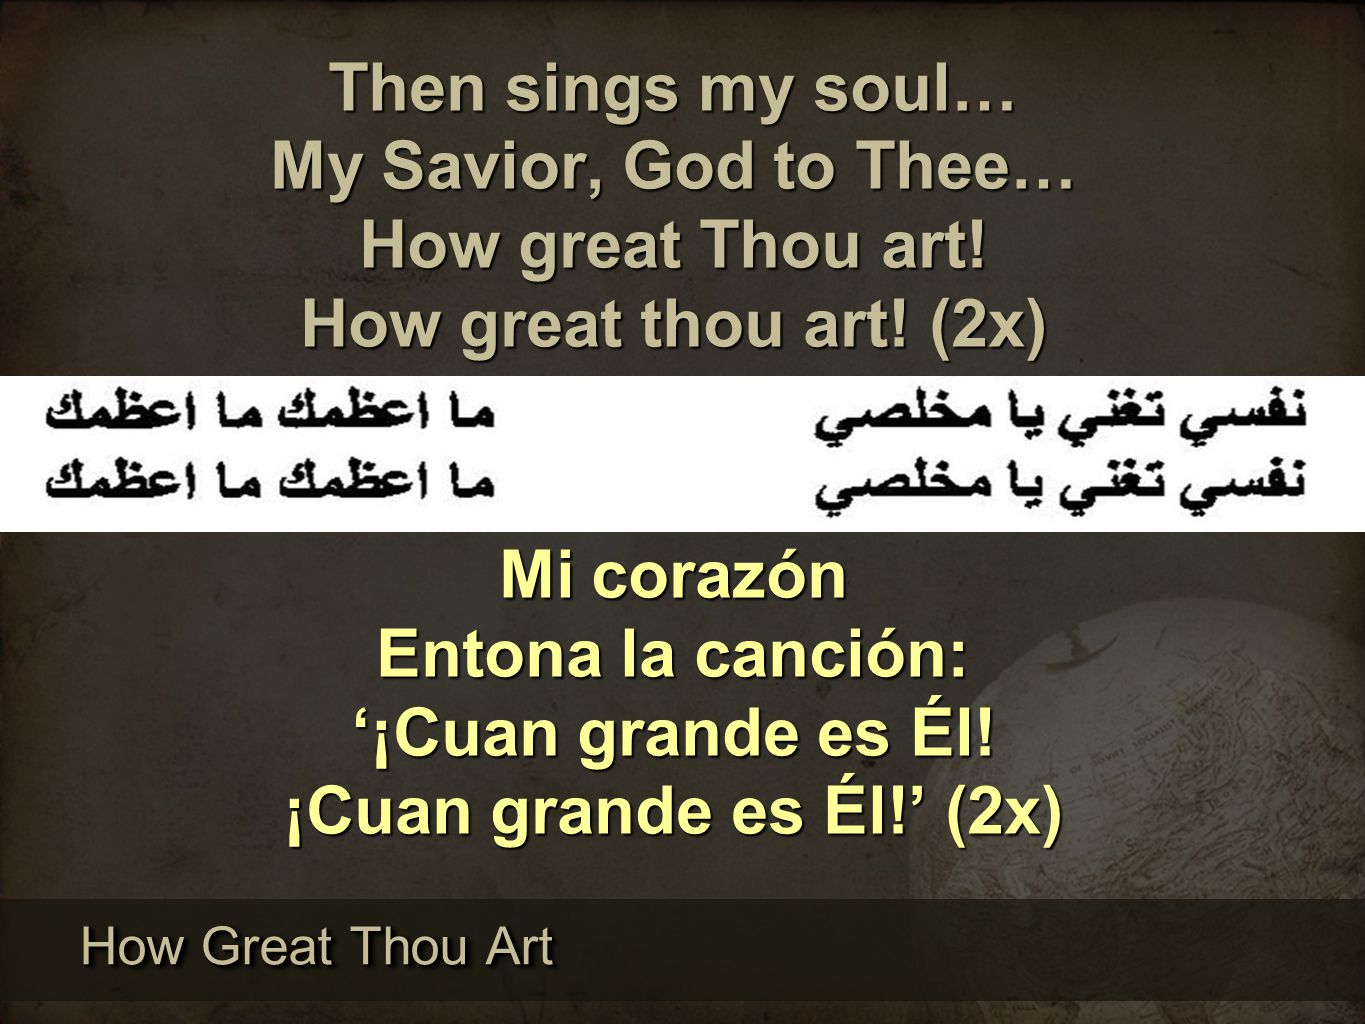 Then sings my soul… My Savior, God to Thee… How great Thou art!